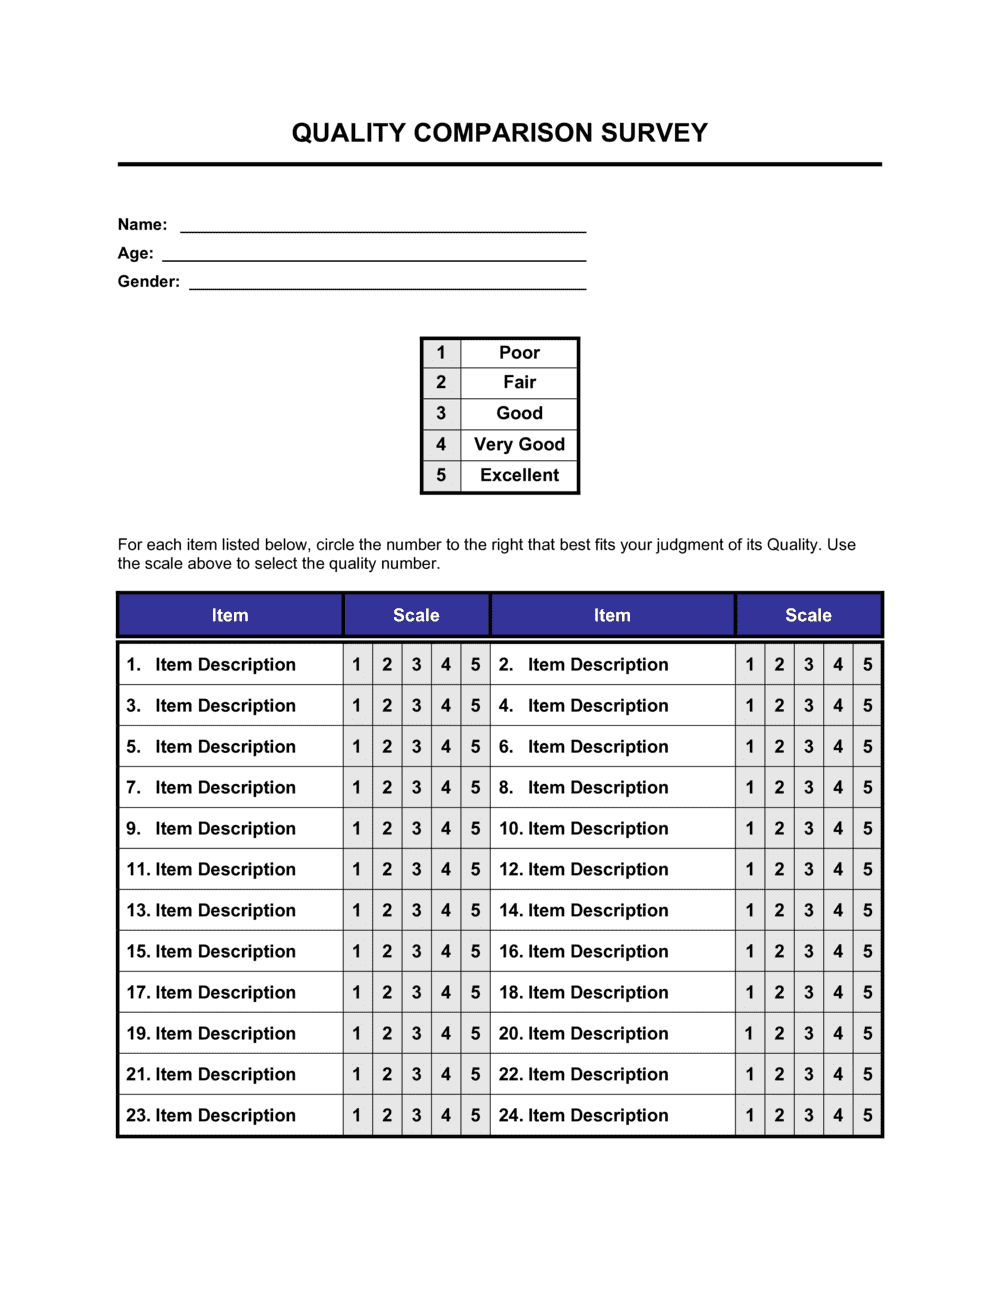 Business-in-a-Box's Quality Comparison Survey Template